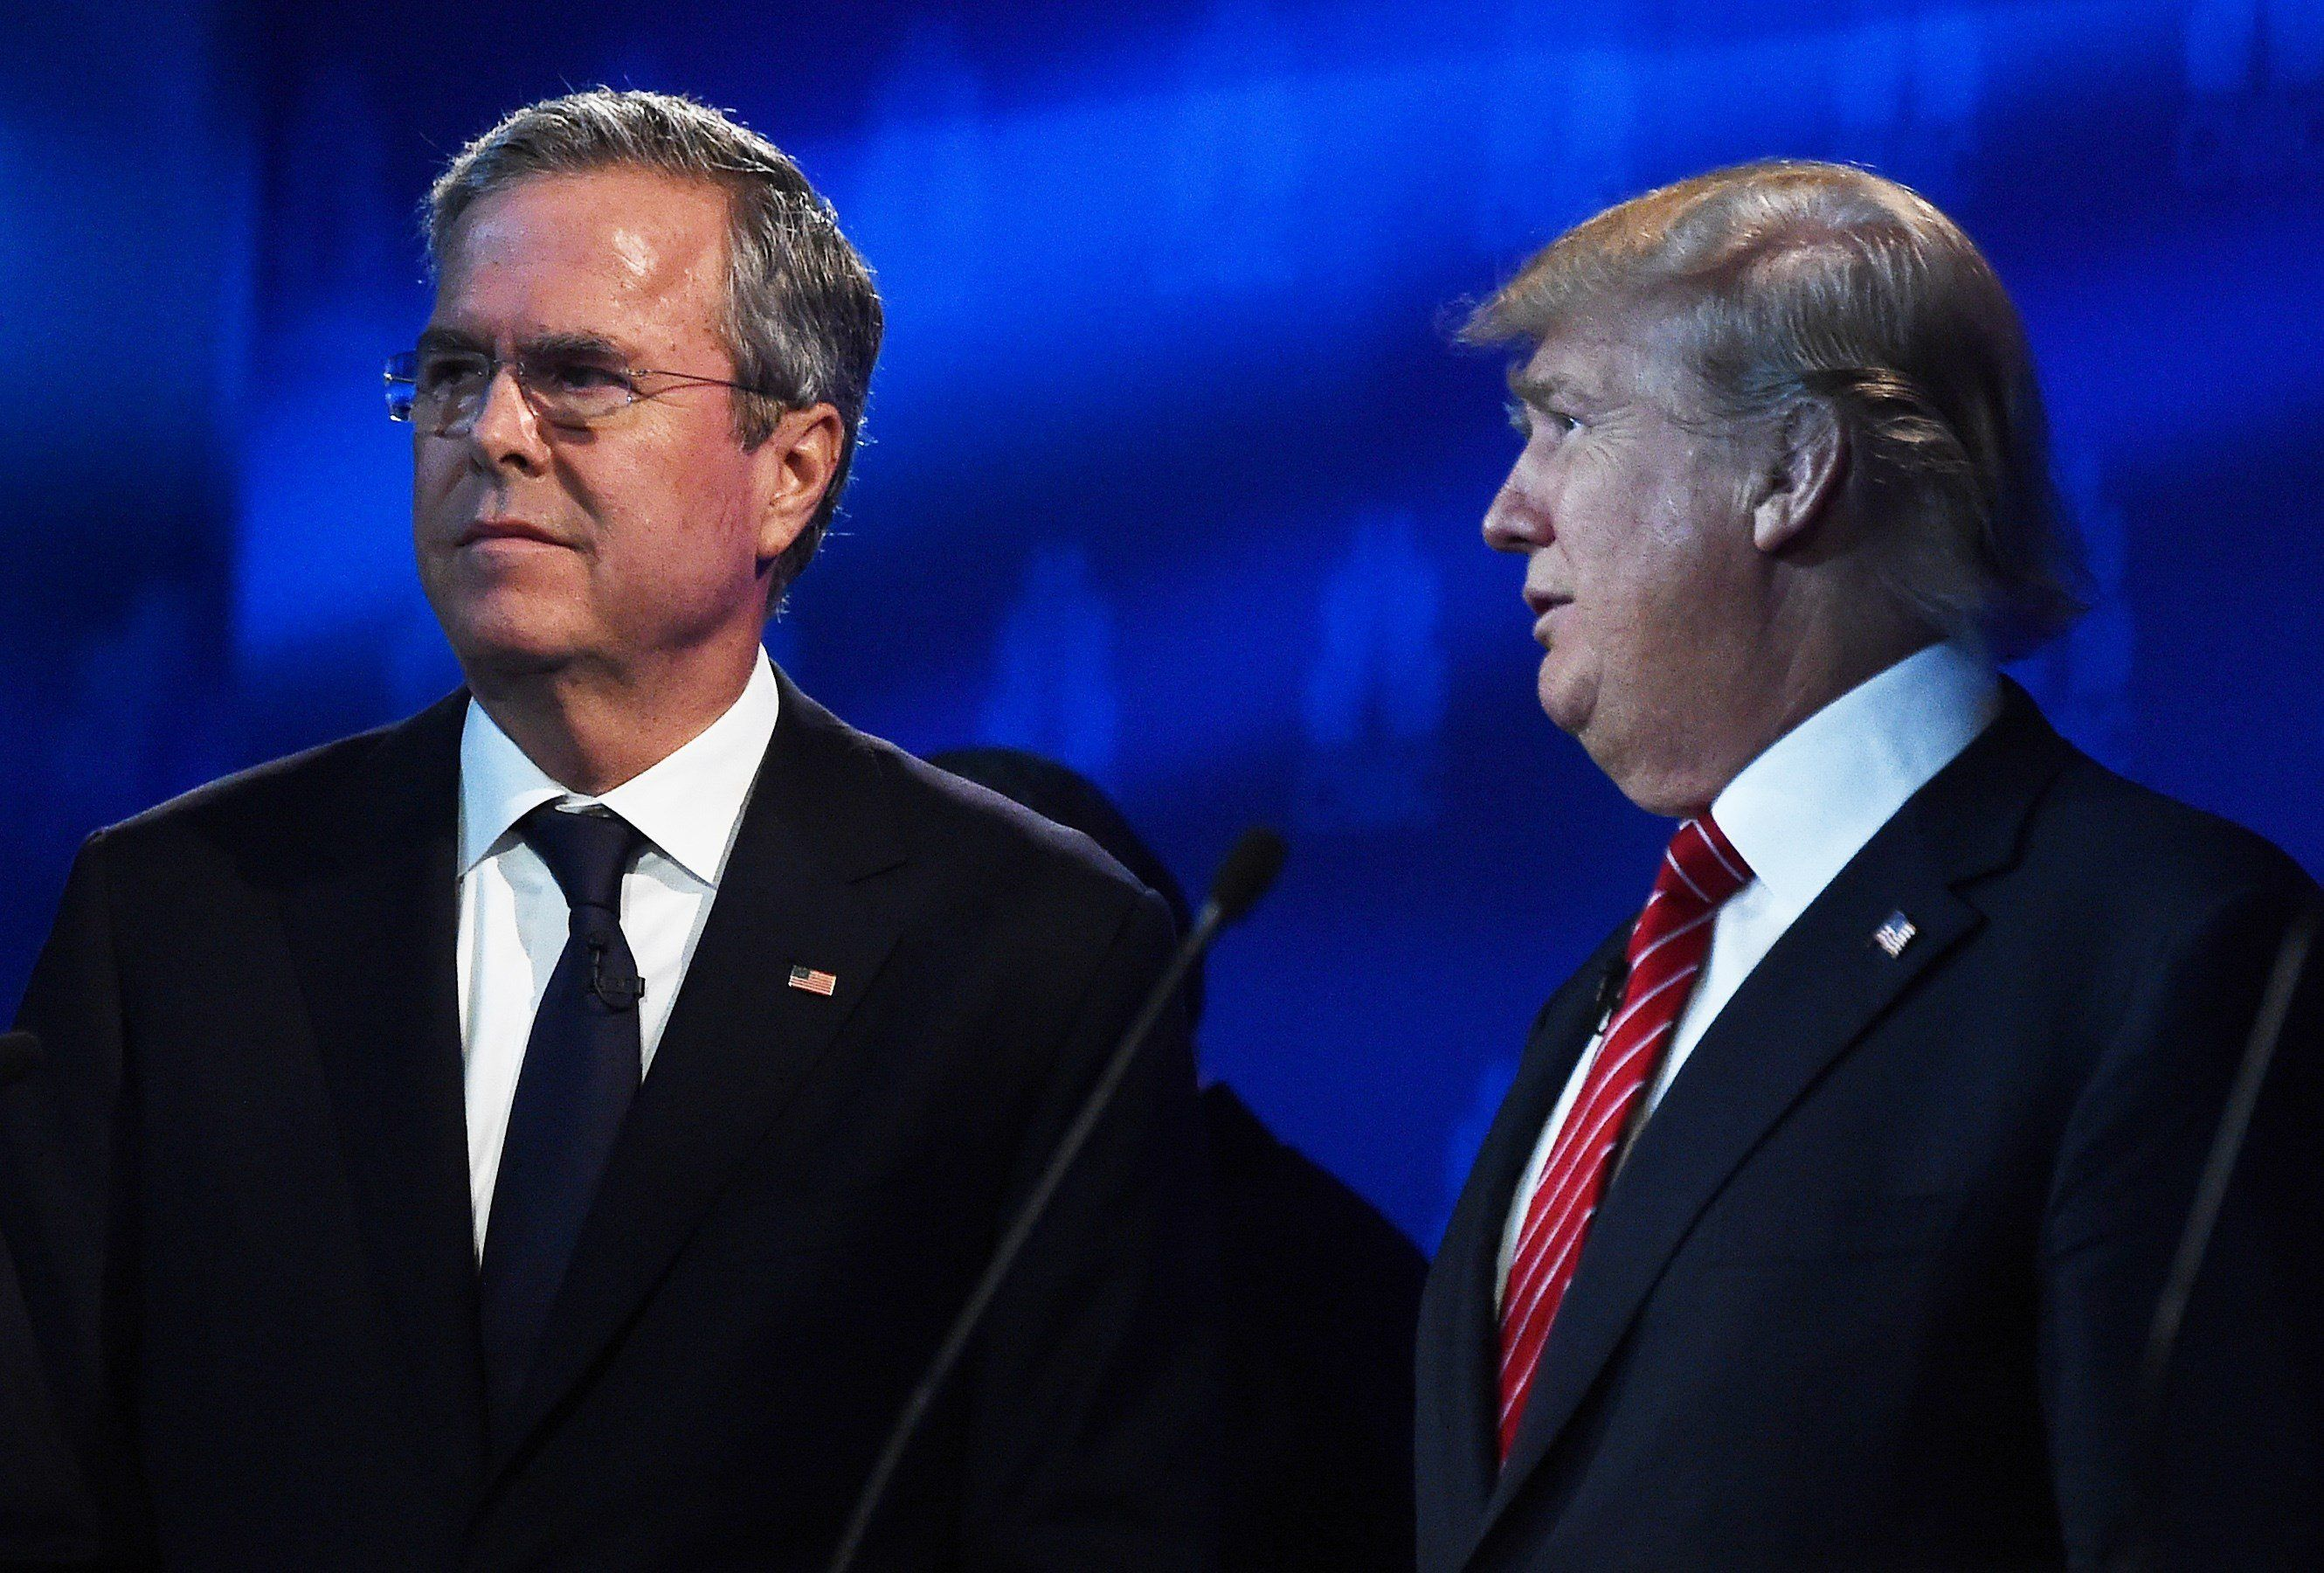 Republican Presidential hopefuls Donald Trump (R) and Jeb Bush look on during a break in the CNBC Republican Presidential Debate, October 28, 2015 at the Coors Event Center at the University of Colorado in Boulder, Colorado. AFP PHOTO/ ROBYN BECK        (Photo credit should read ROBYN BECK/AFP/Getty Images)